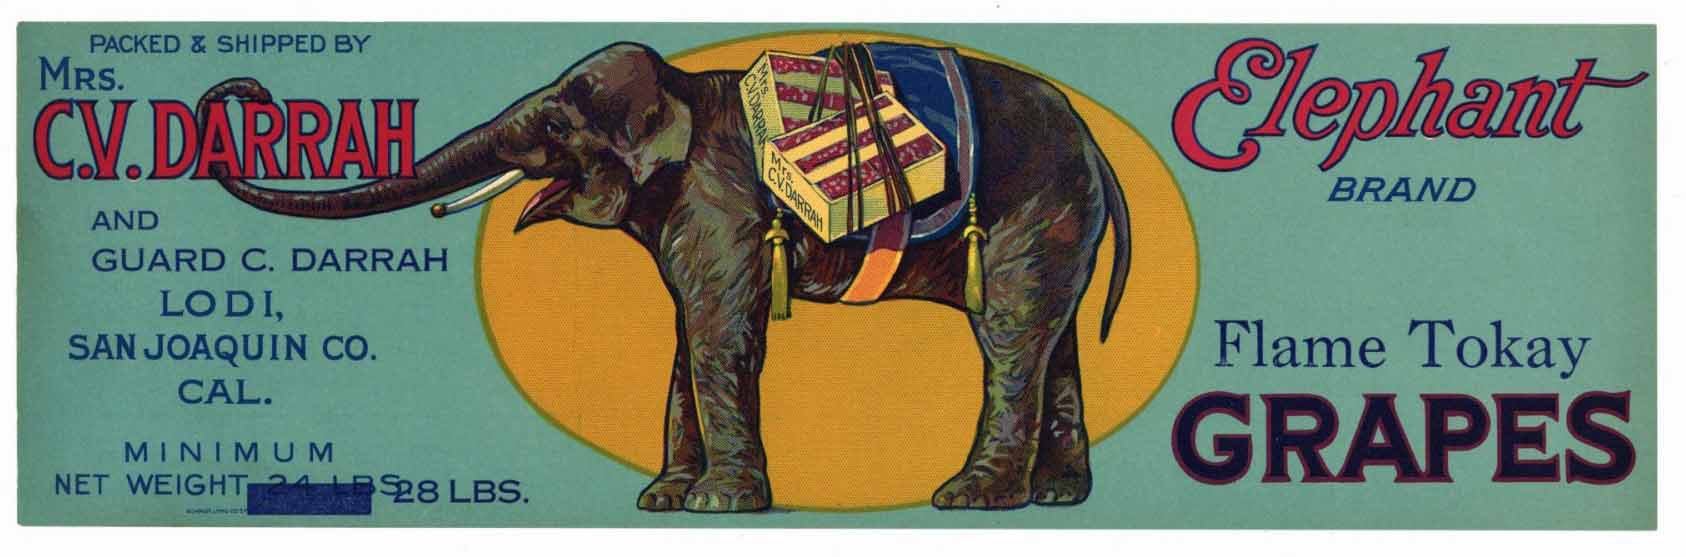 ELEPHANT Brand Vintage Grape Crate Label (LL236)